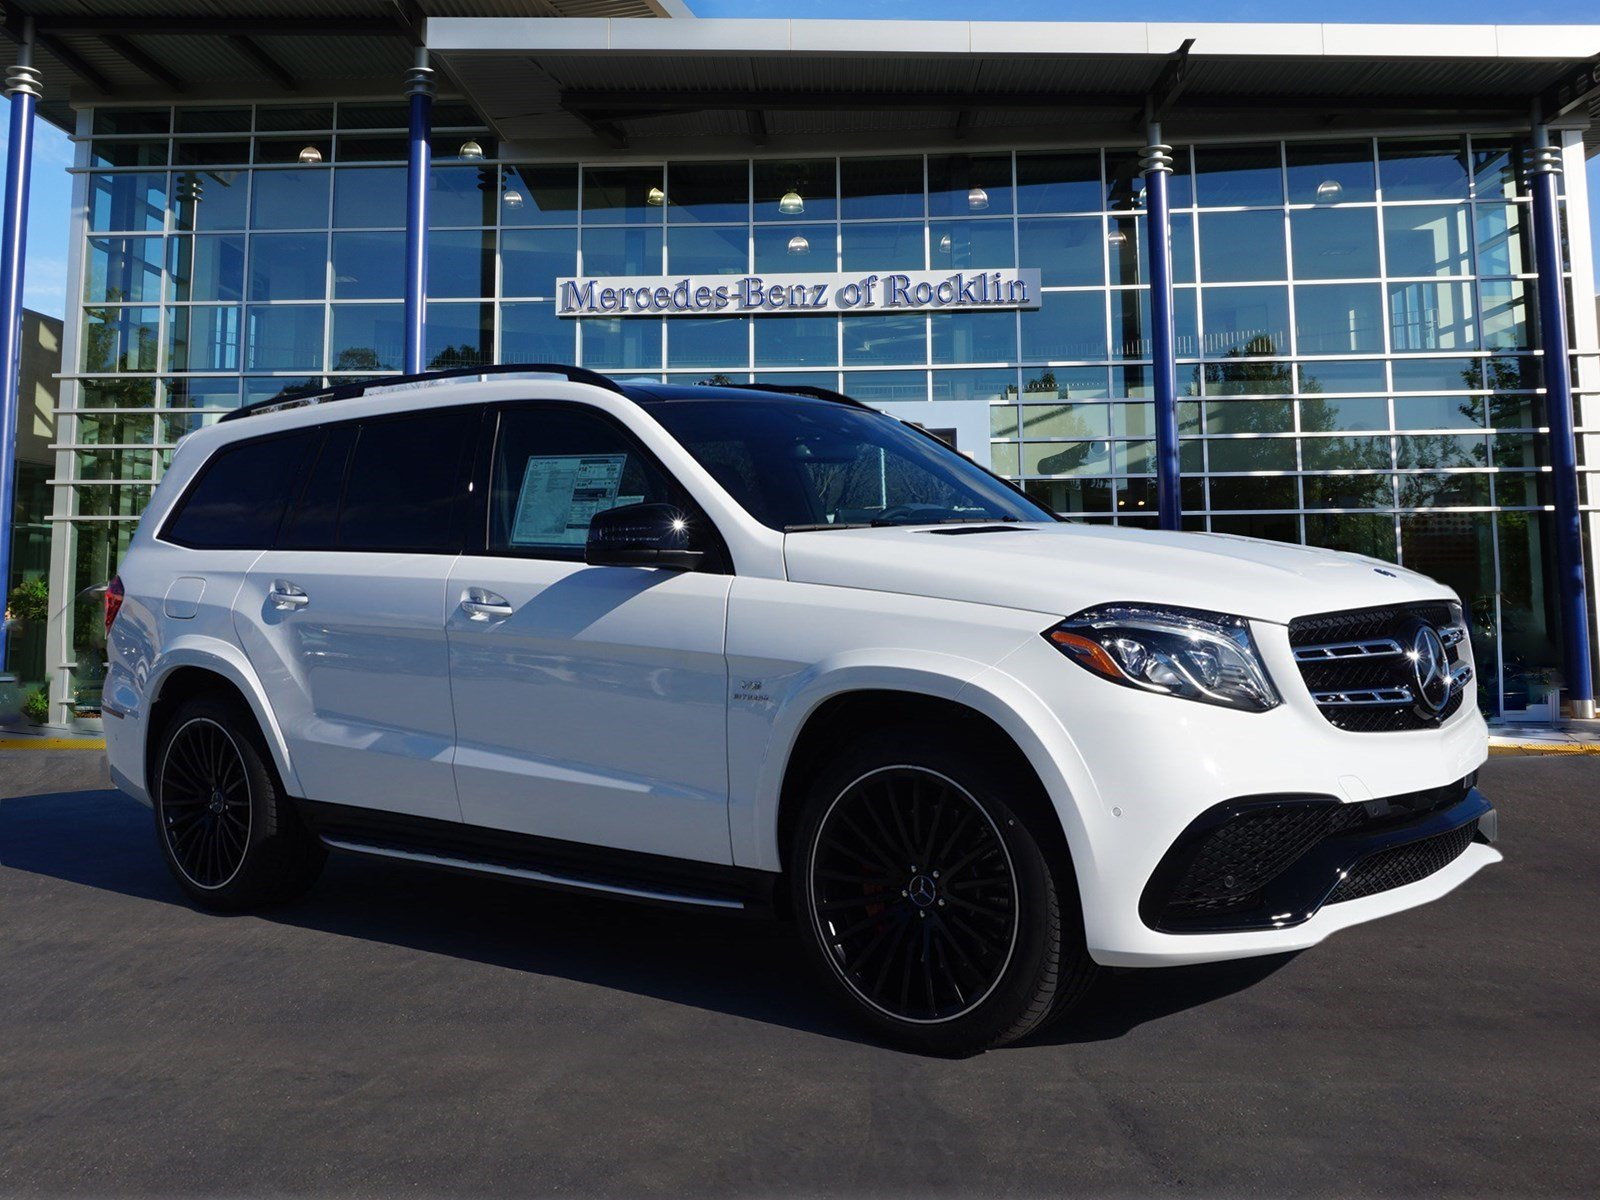 New 2017 mercedes benz gls amg gls63 sport utility in for Mercedes benz rocklin service